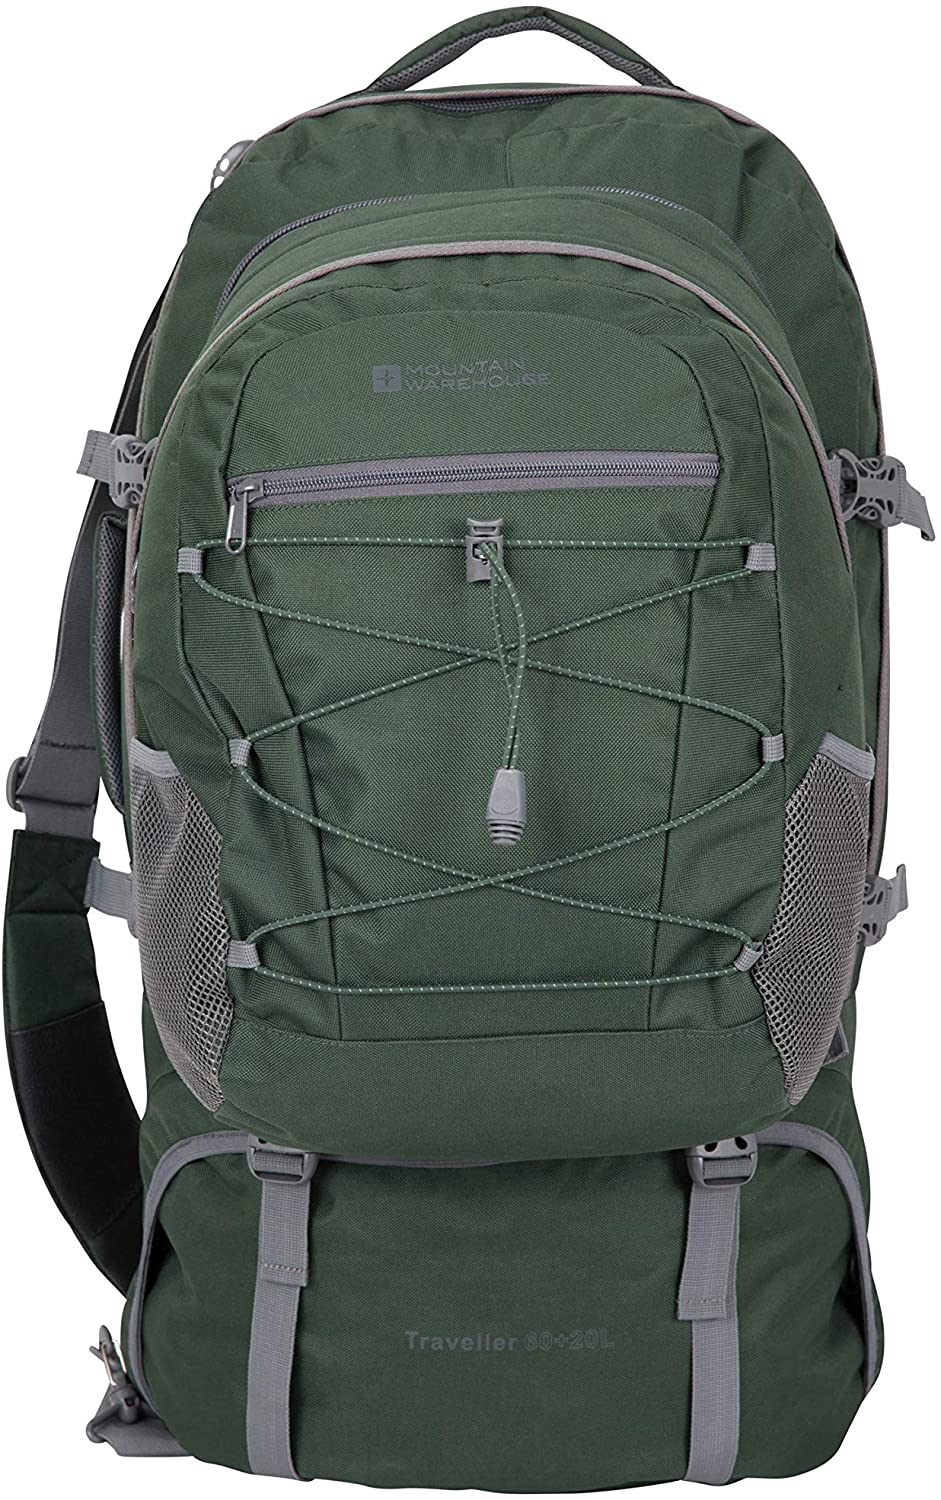 Mountain Warehouse Traveller 60 + 20L Travel Backpack - for Camping, Outdoor Rucksack with Detachable Daypack